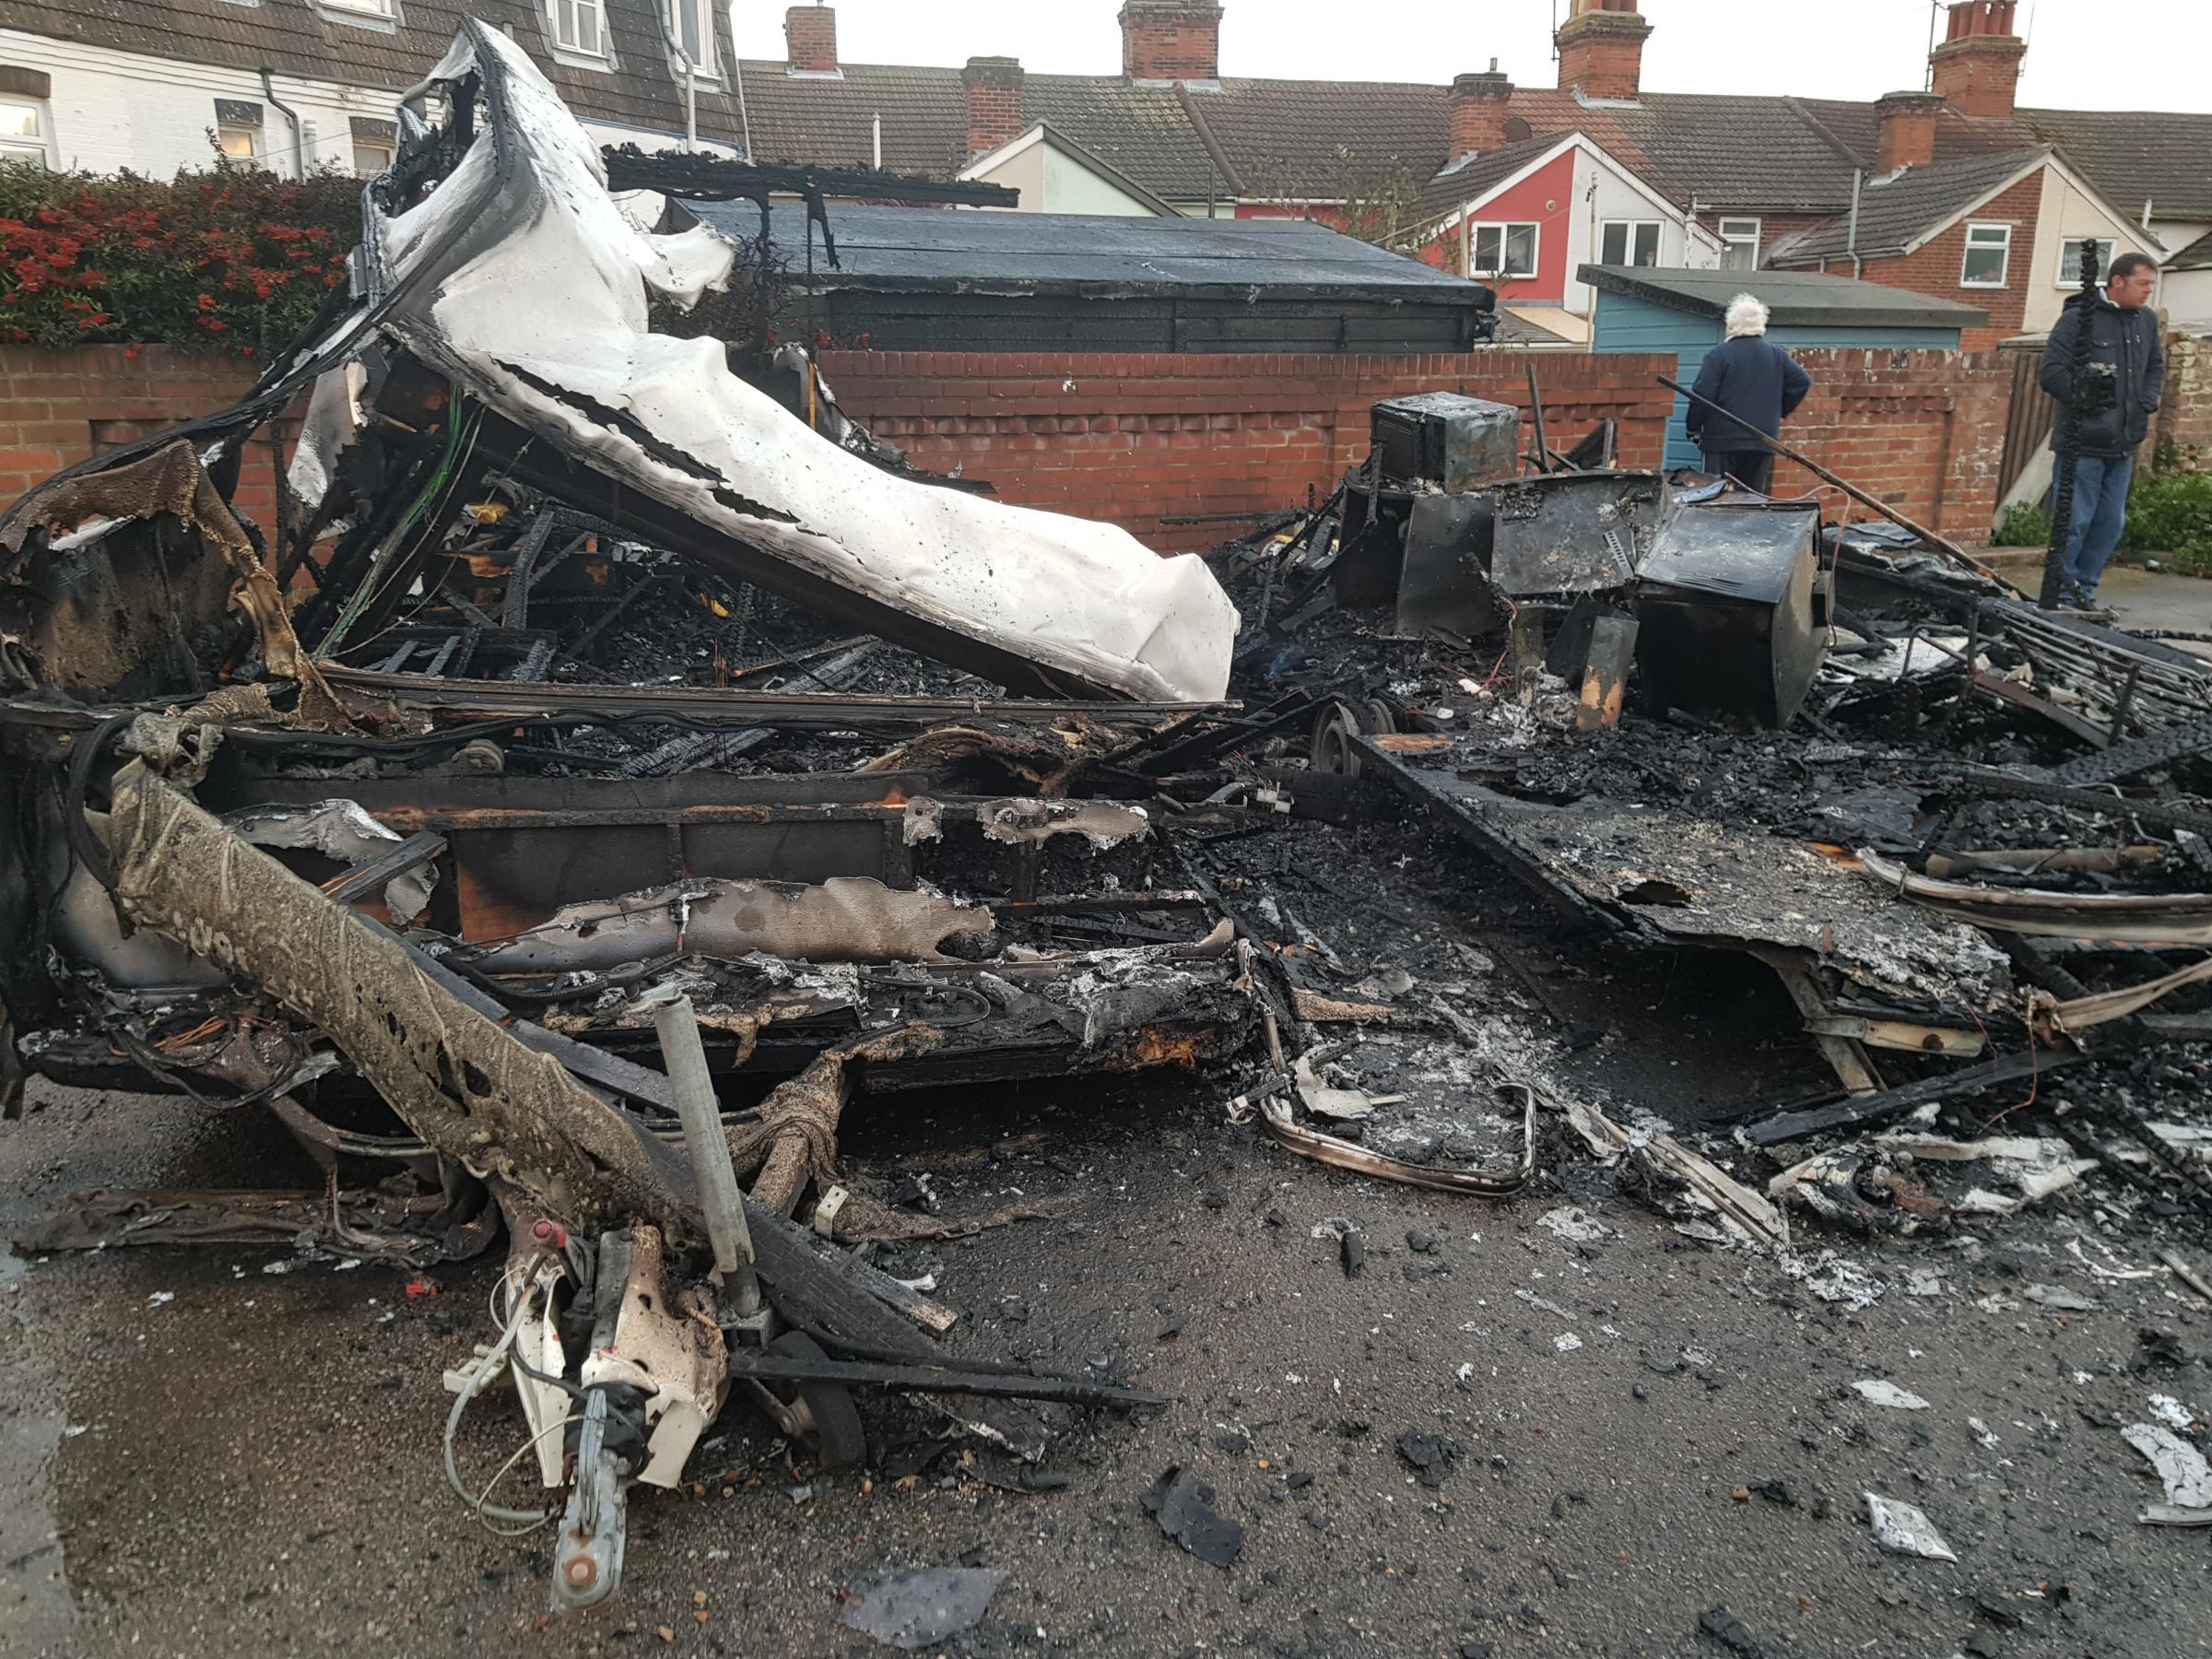 'Fire that destroyed two storage caravans was deliberate'